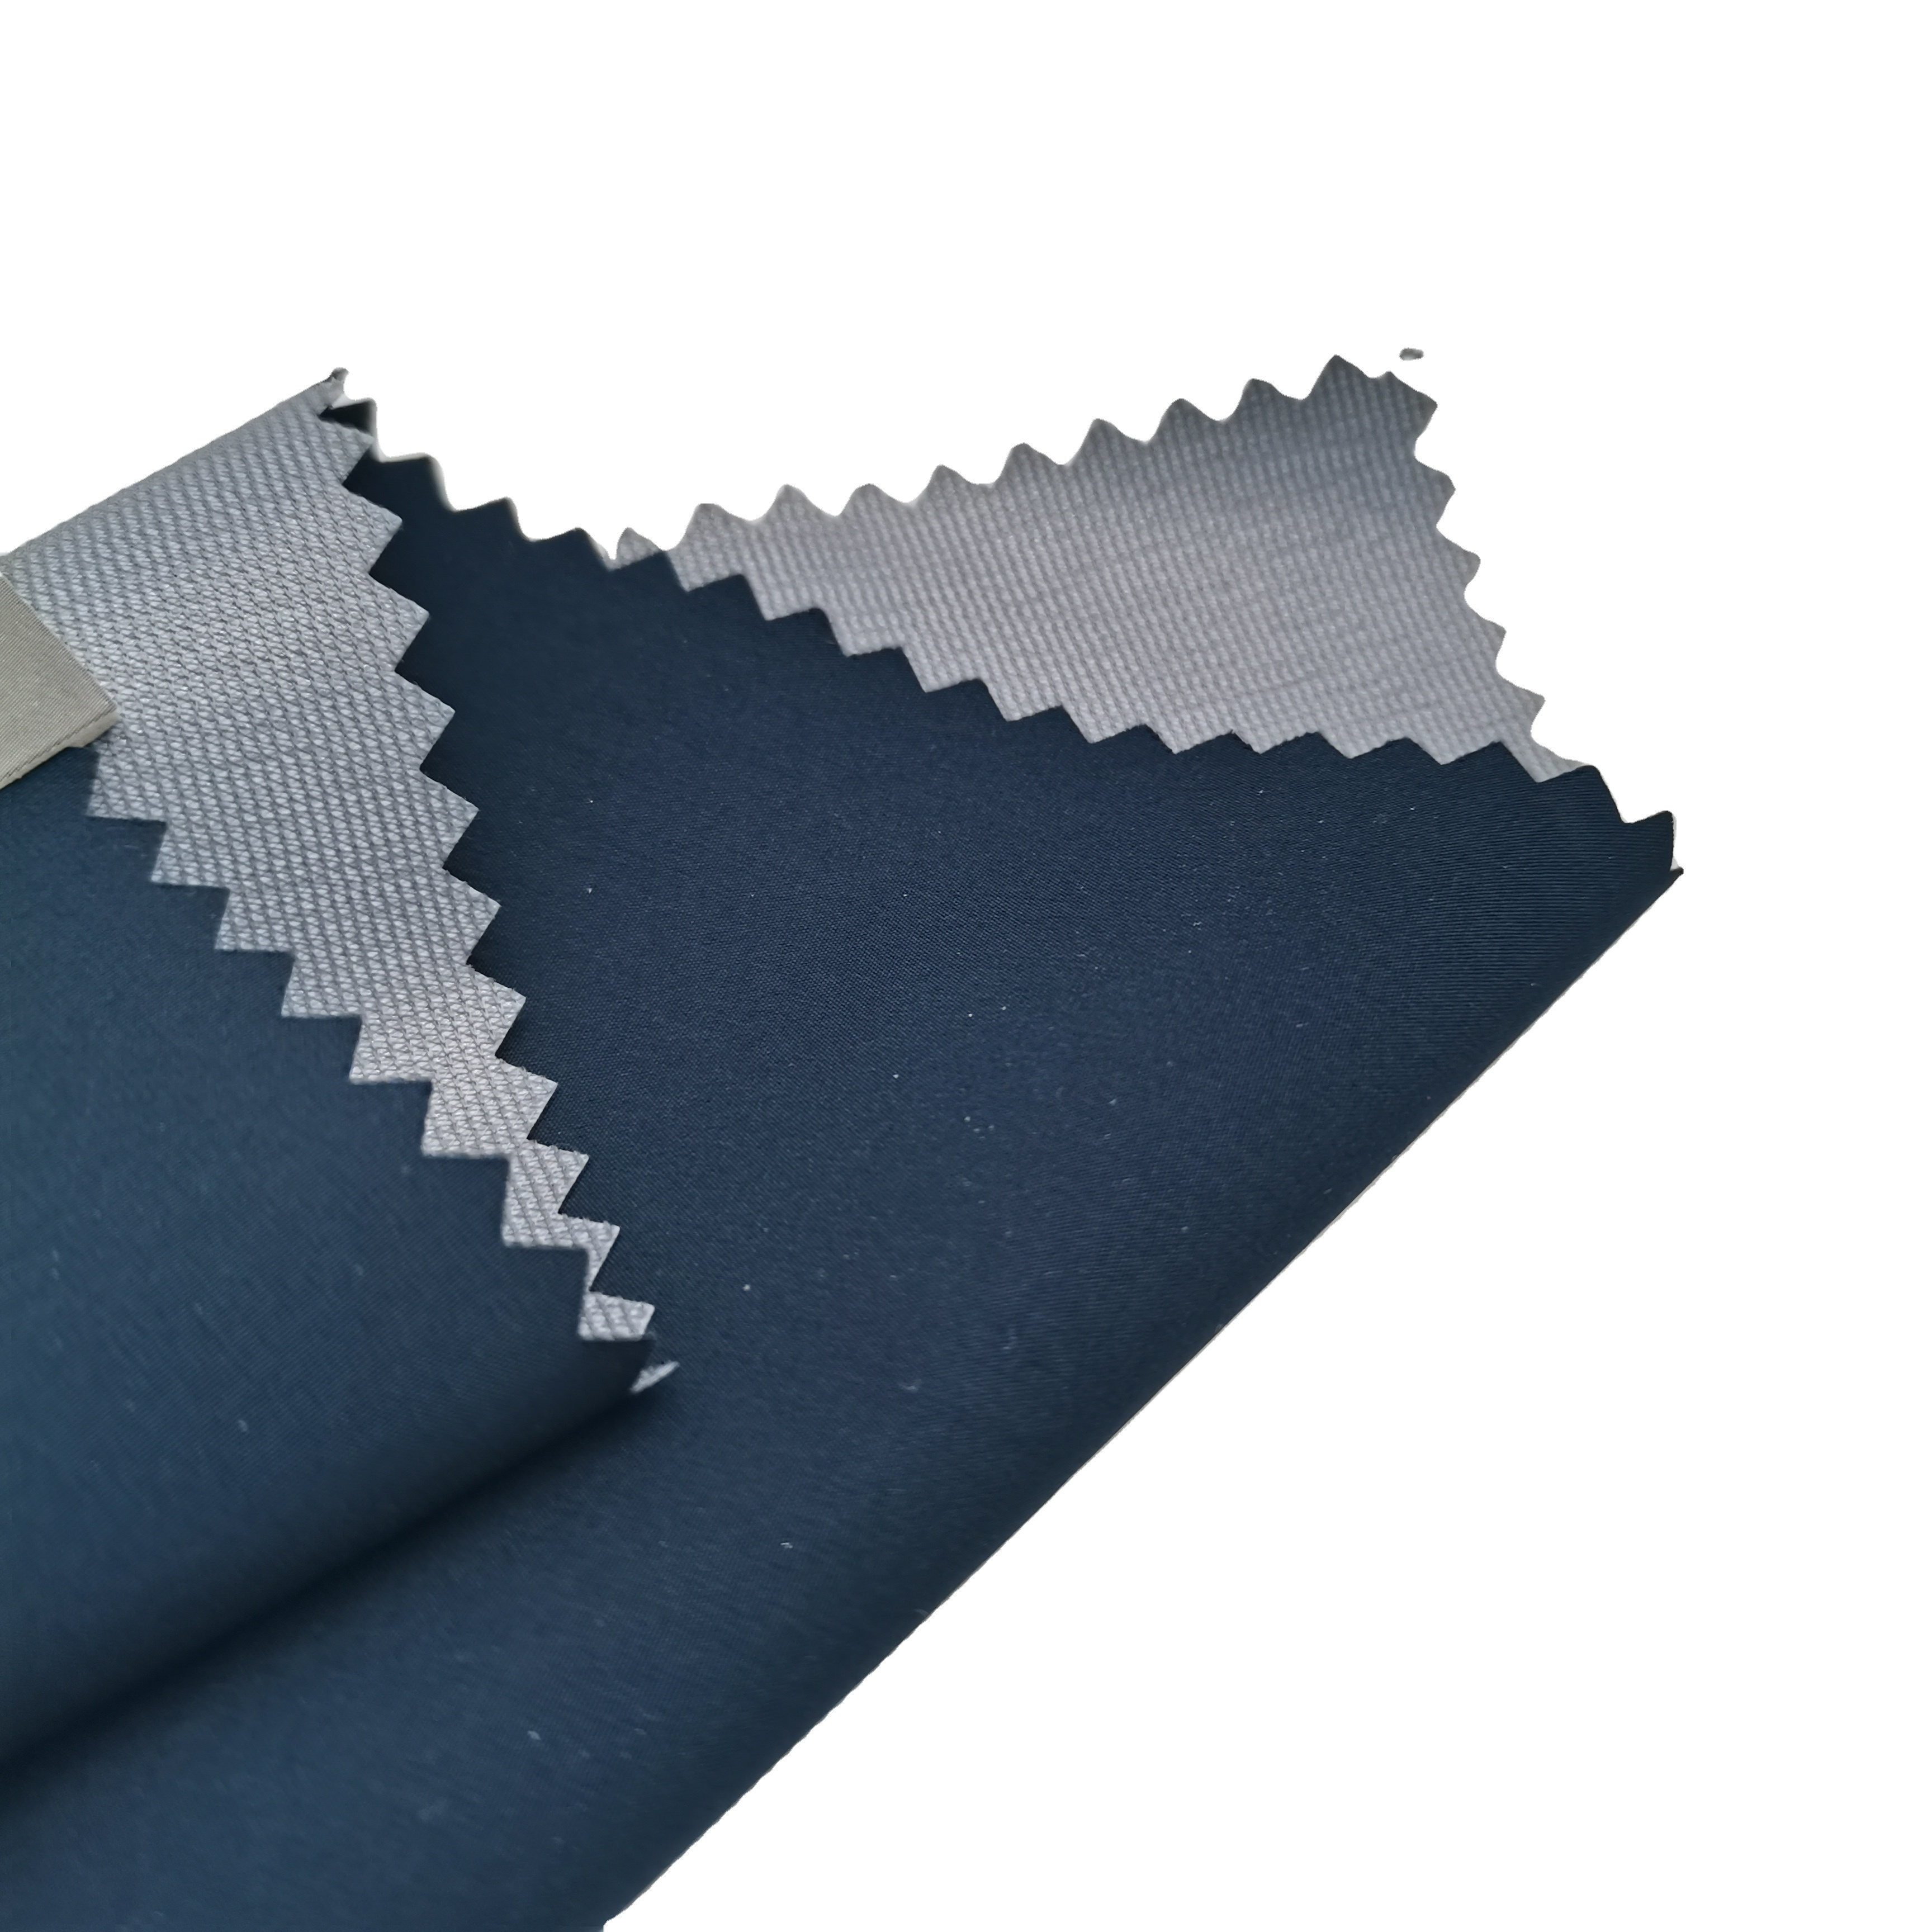 50D/144F 100% polyester pongee dewspo fabric with breathable TPU and 30D tricot used seam tape